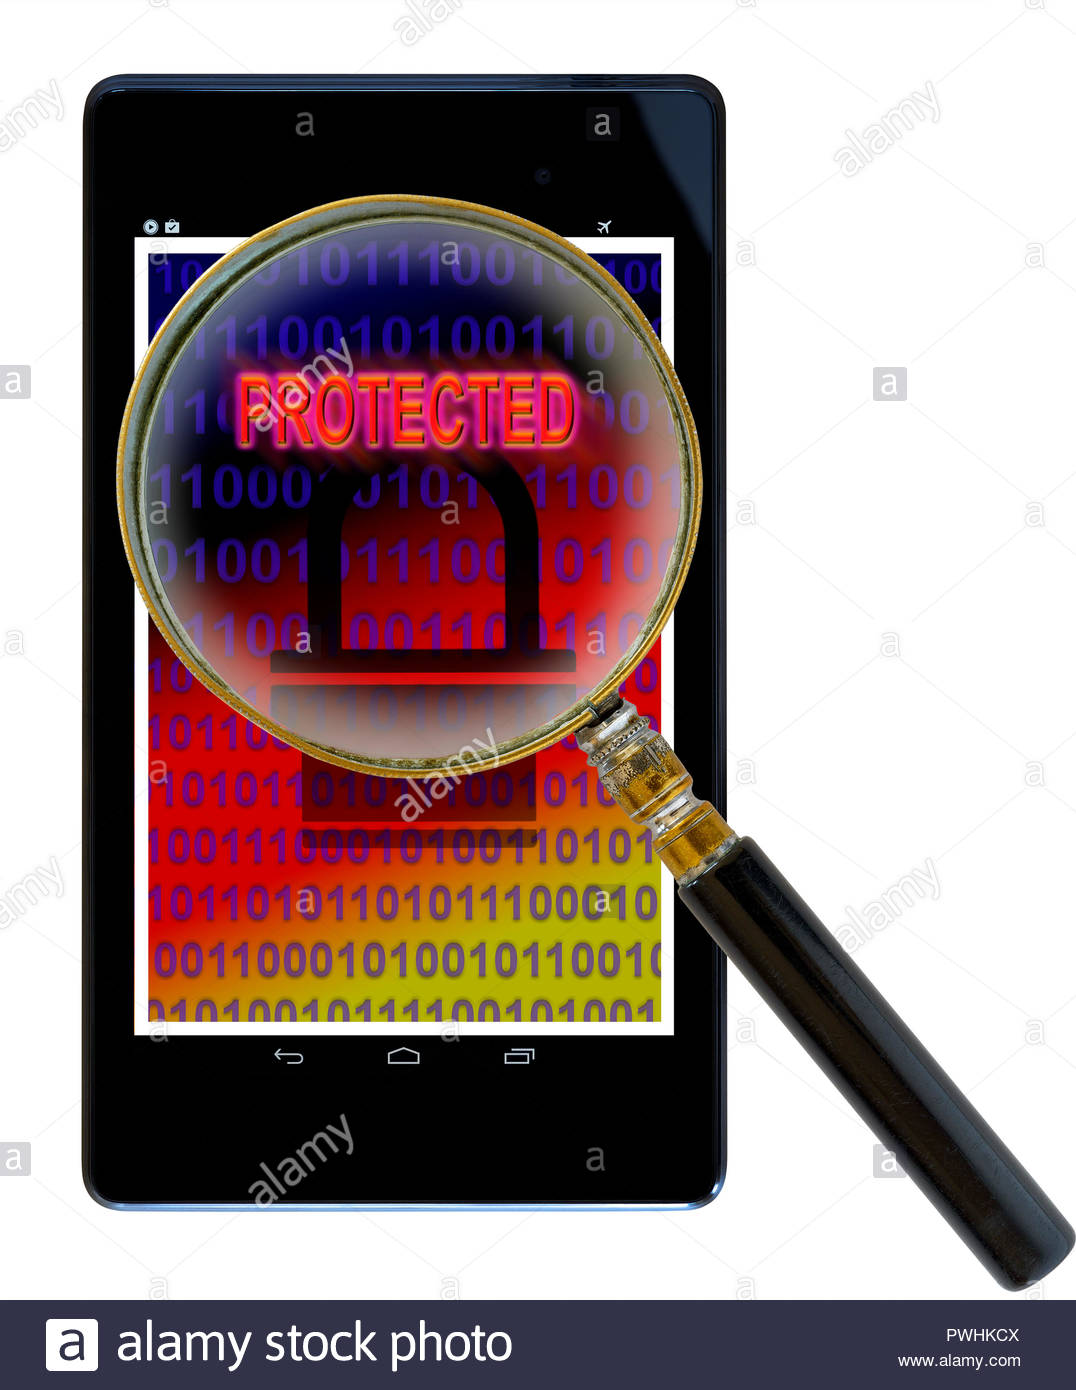 Protected shown on a tablet computer, Dorset, England, UK - Stock Image